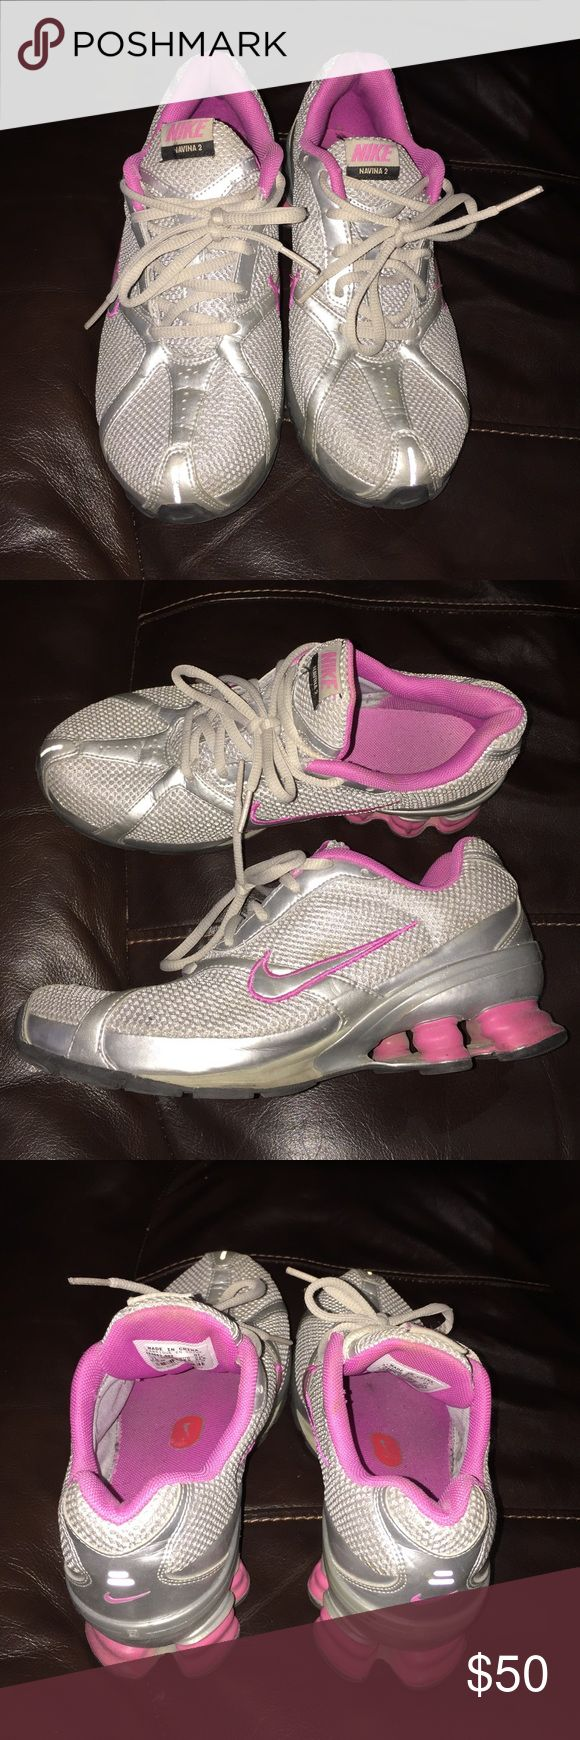 Pink and Gray Nike Shocks. Nike shocks. A bit worn but still have a lot of life left in them. Smoke and pet free home.            ✨price is not firm make me an offer! ✨ Nike Shoes Athletic Shoes